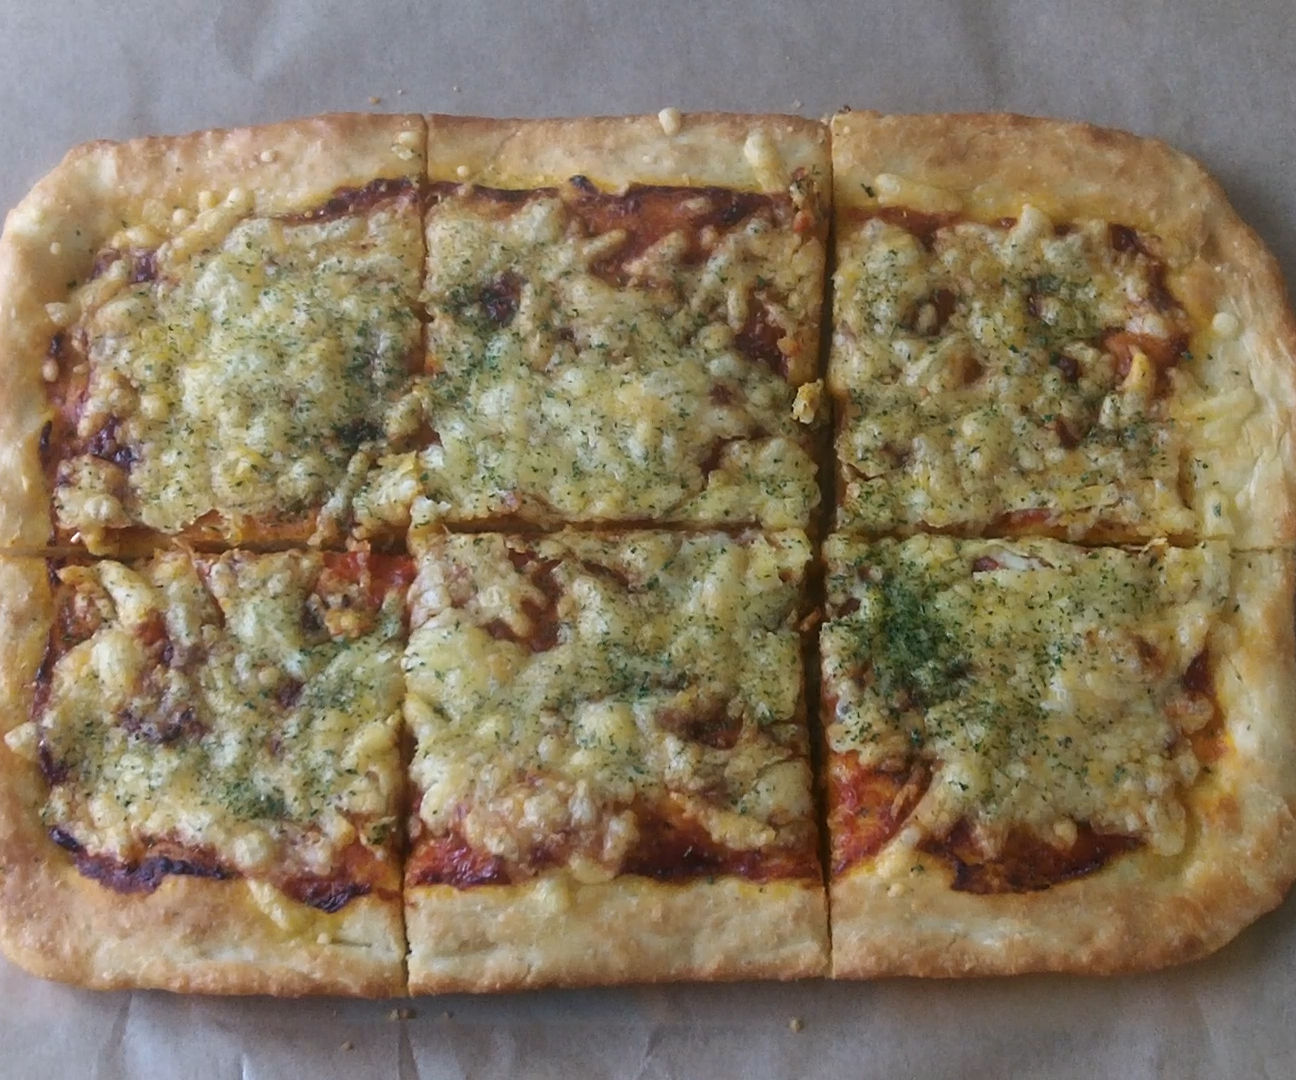 Super Fast Pizza from Scratch - no mixer & easy clean recipe